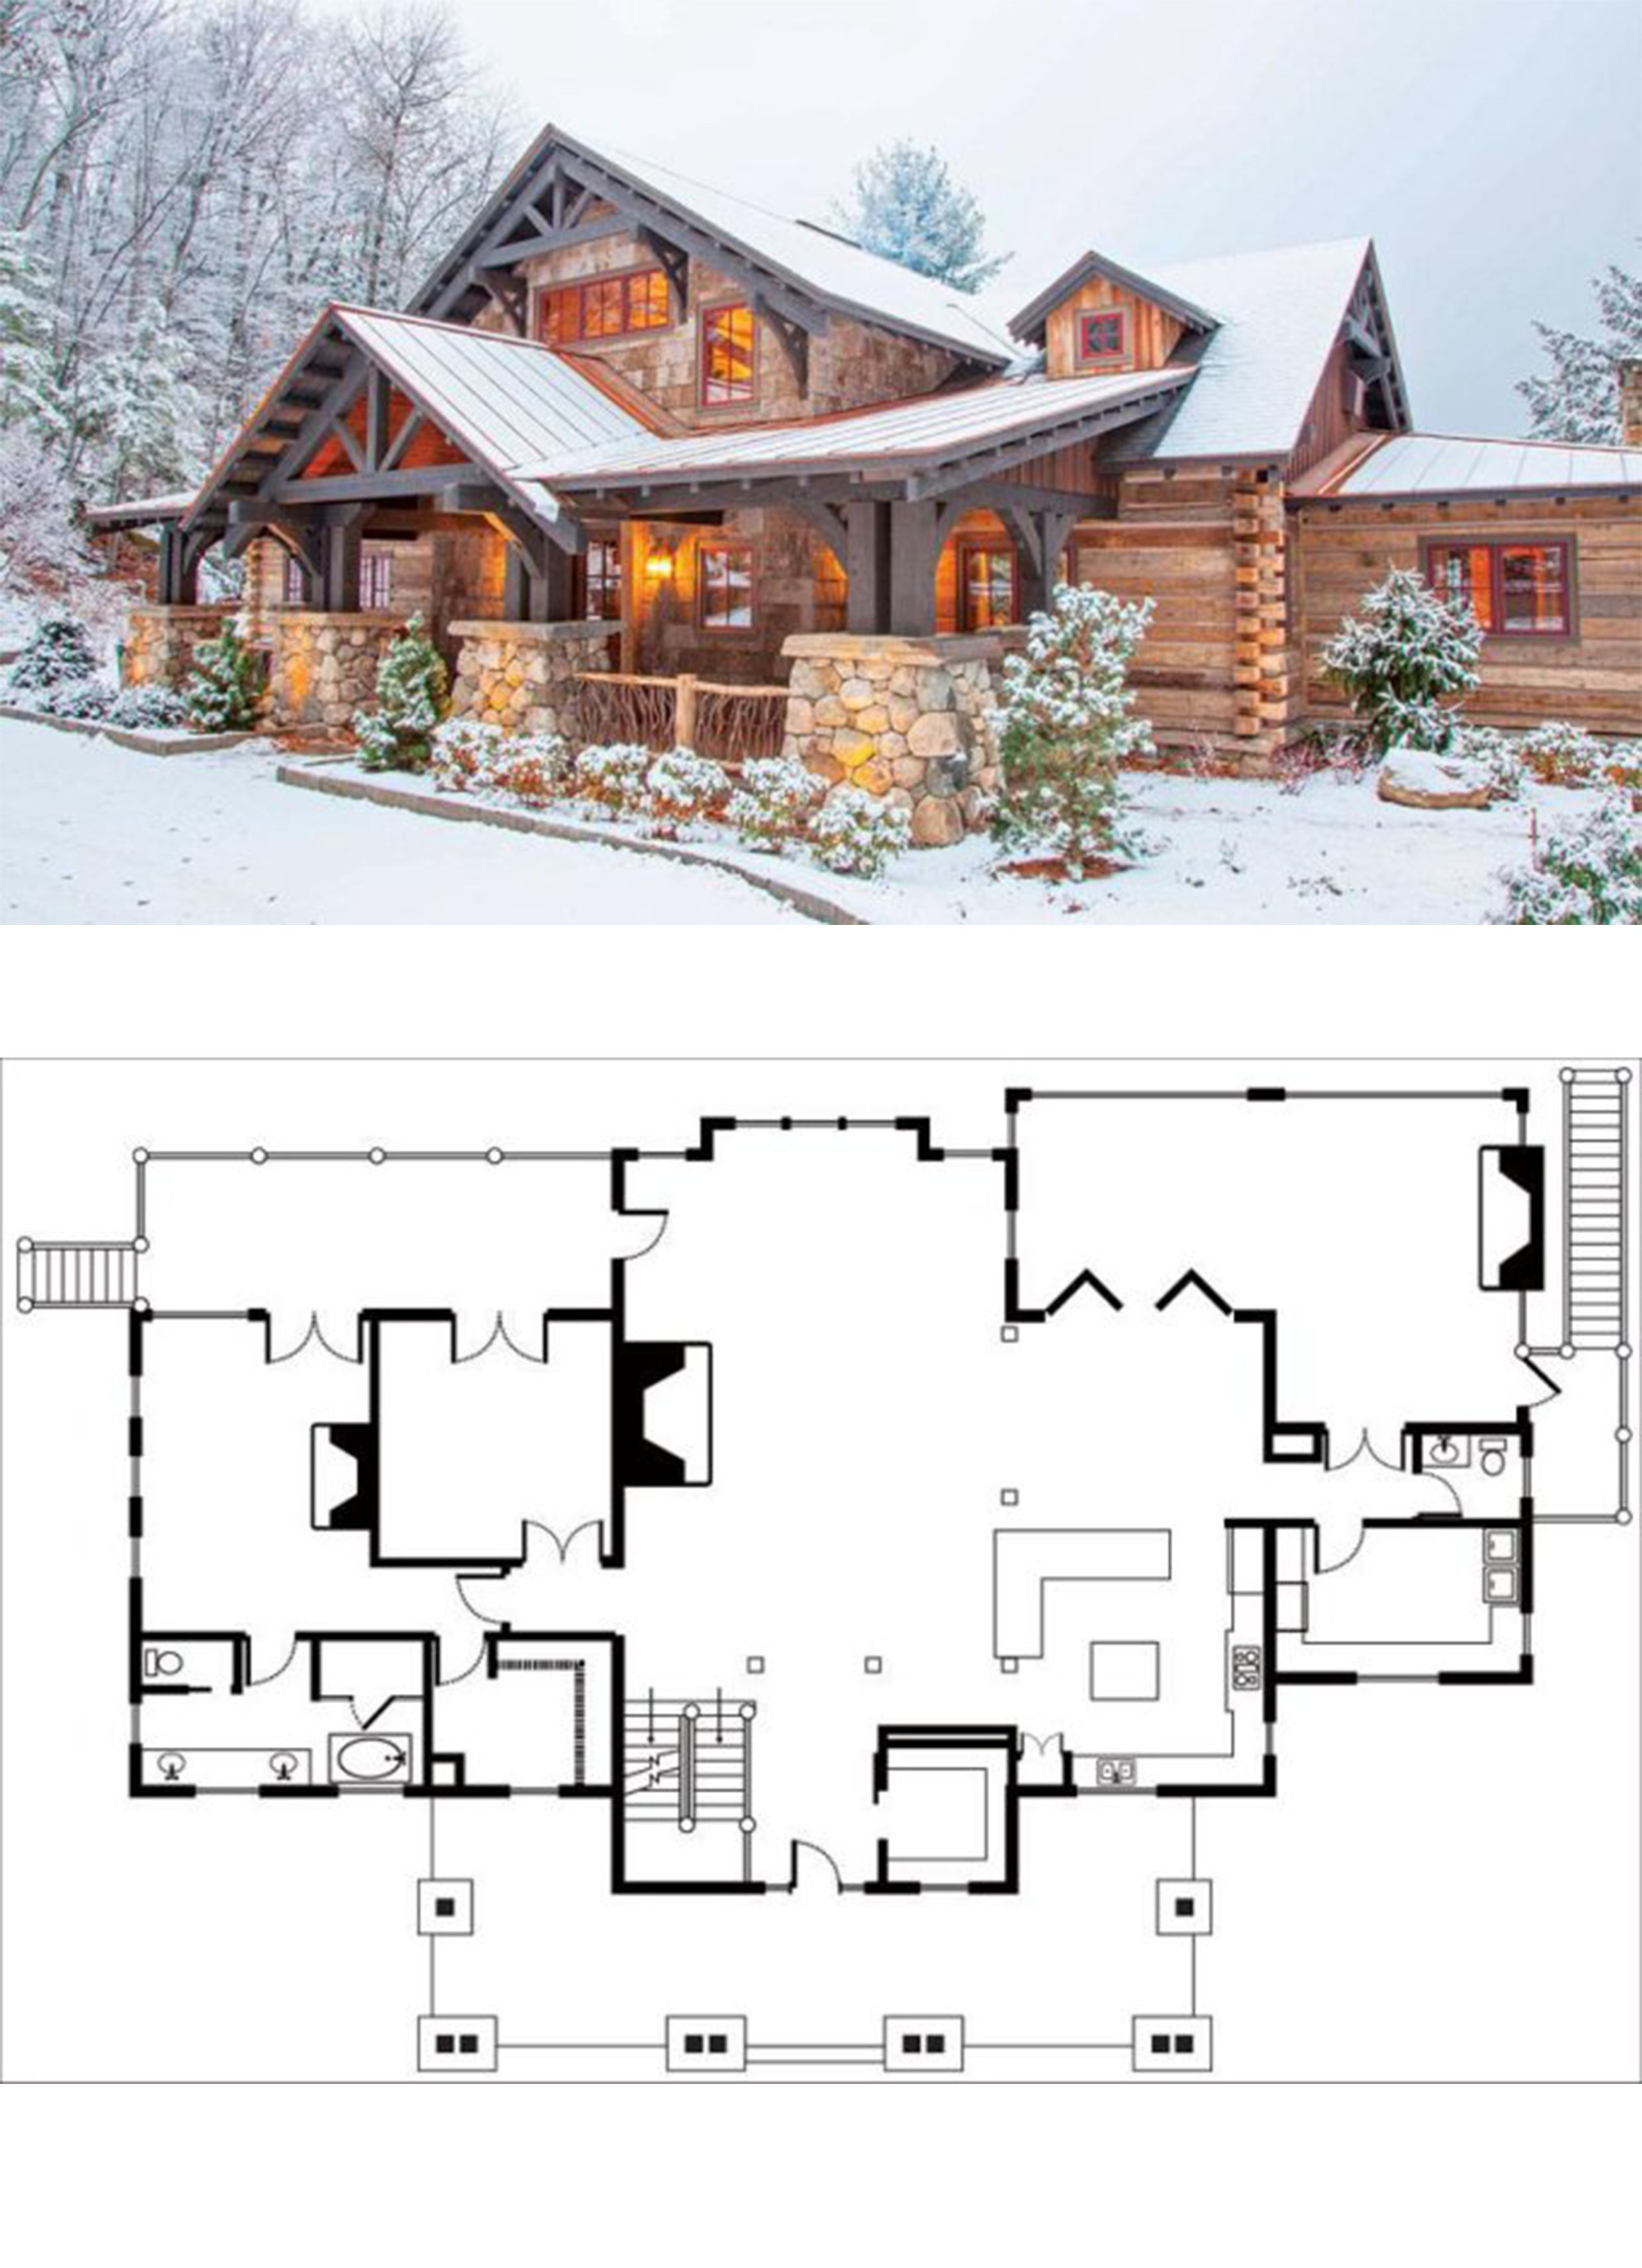 Floor Plan For The Perfect Getaway Log Home Cabin In 2020 Log Cabin Floor Plans Floor Plans Log Homes